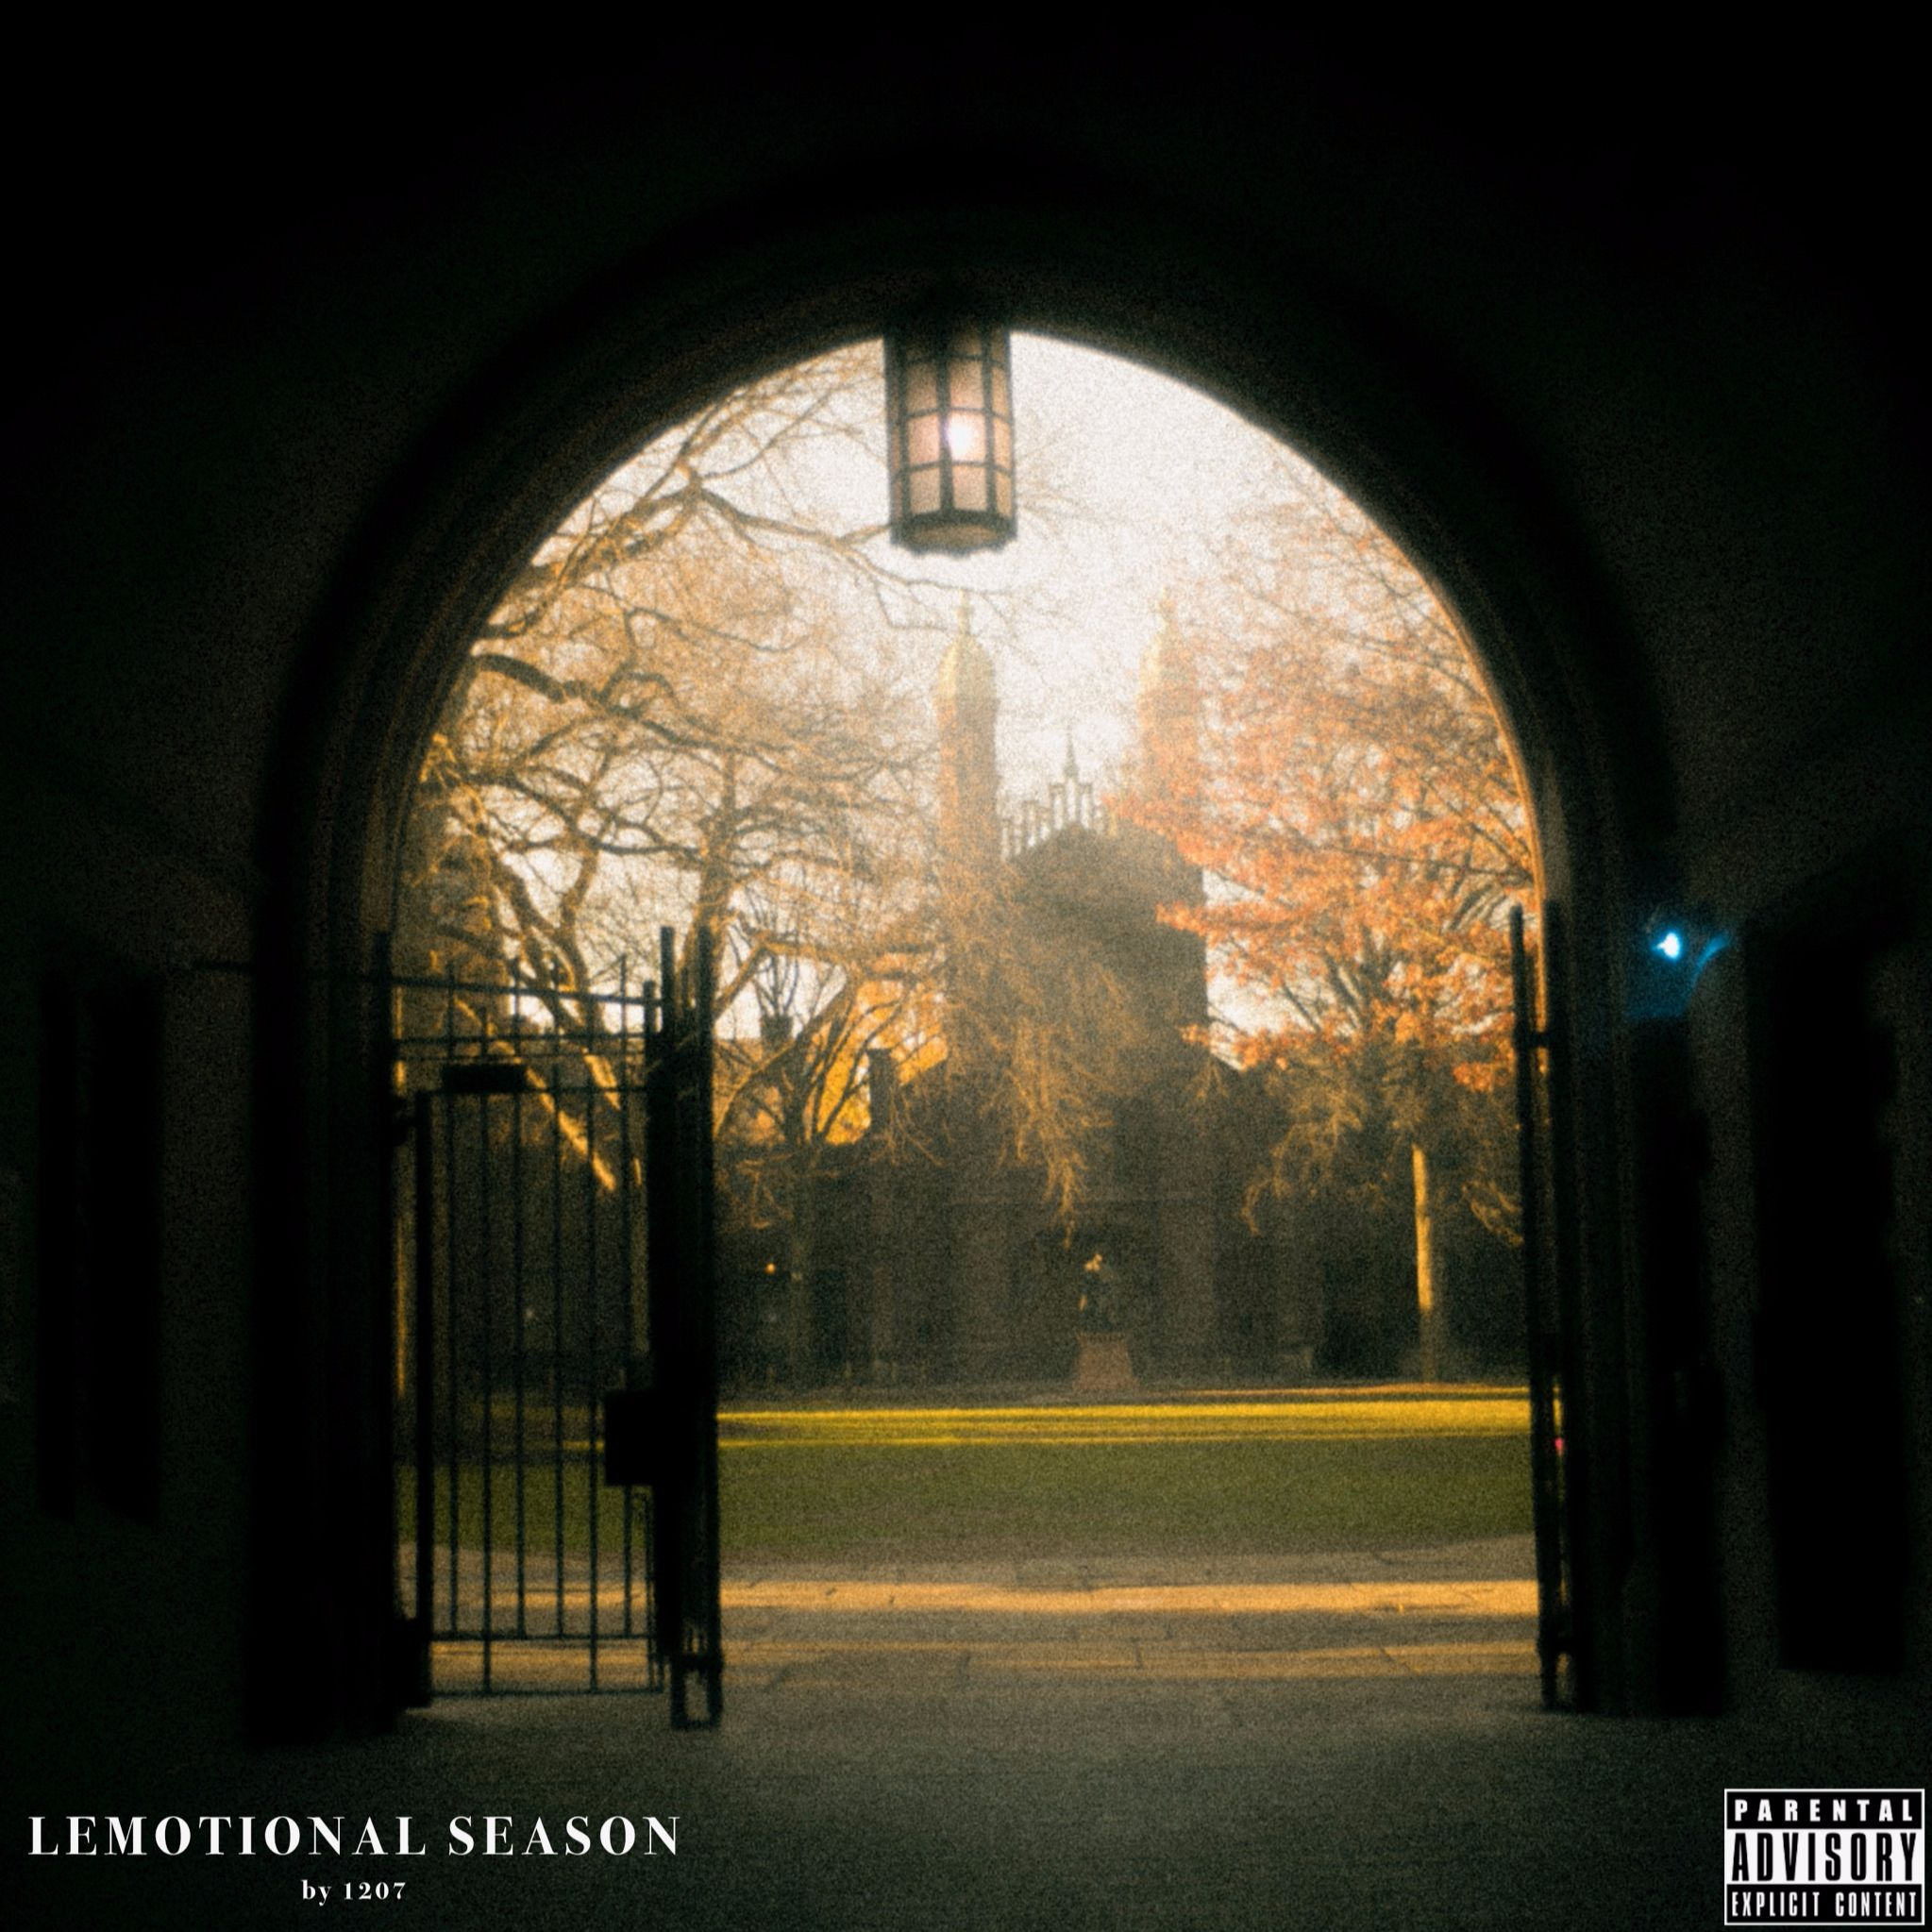 rob-stone-lemotional-season-by-1207-ep